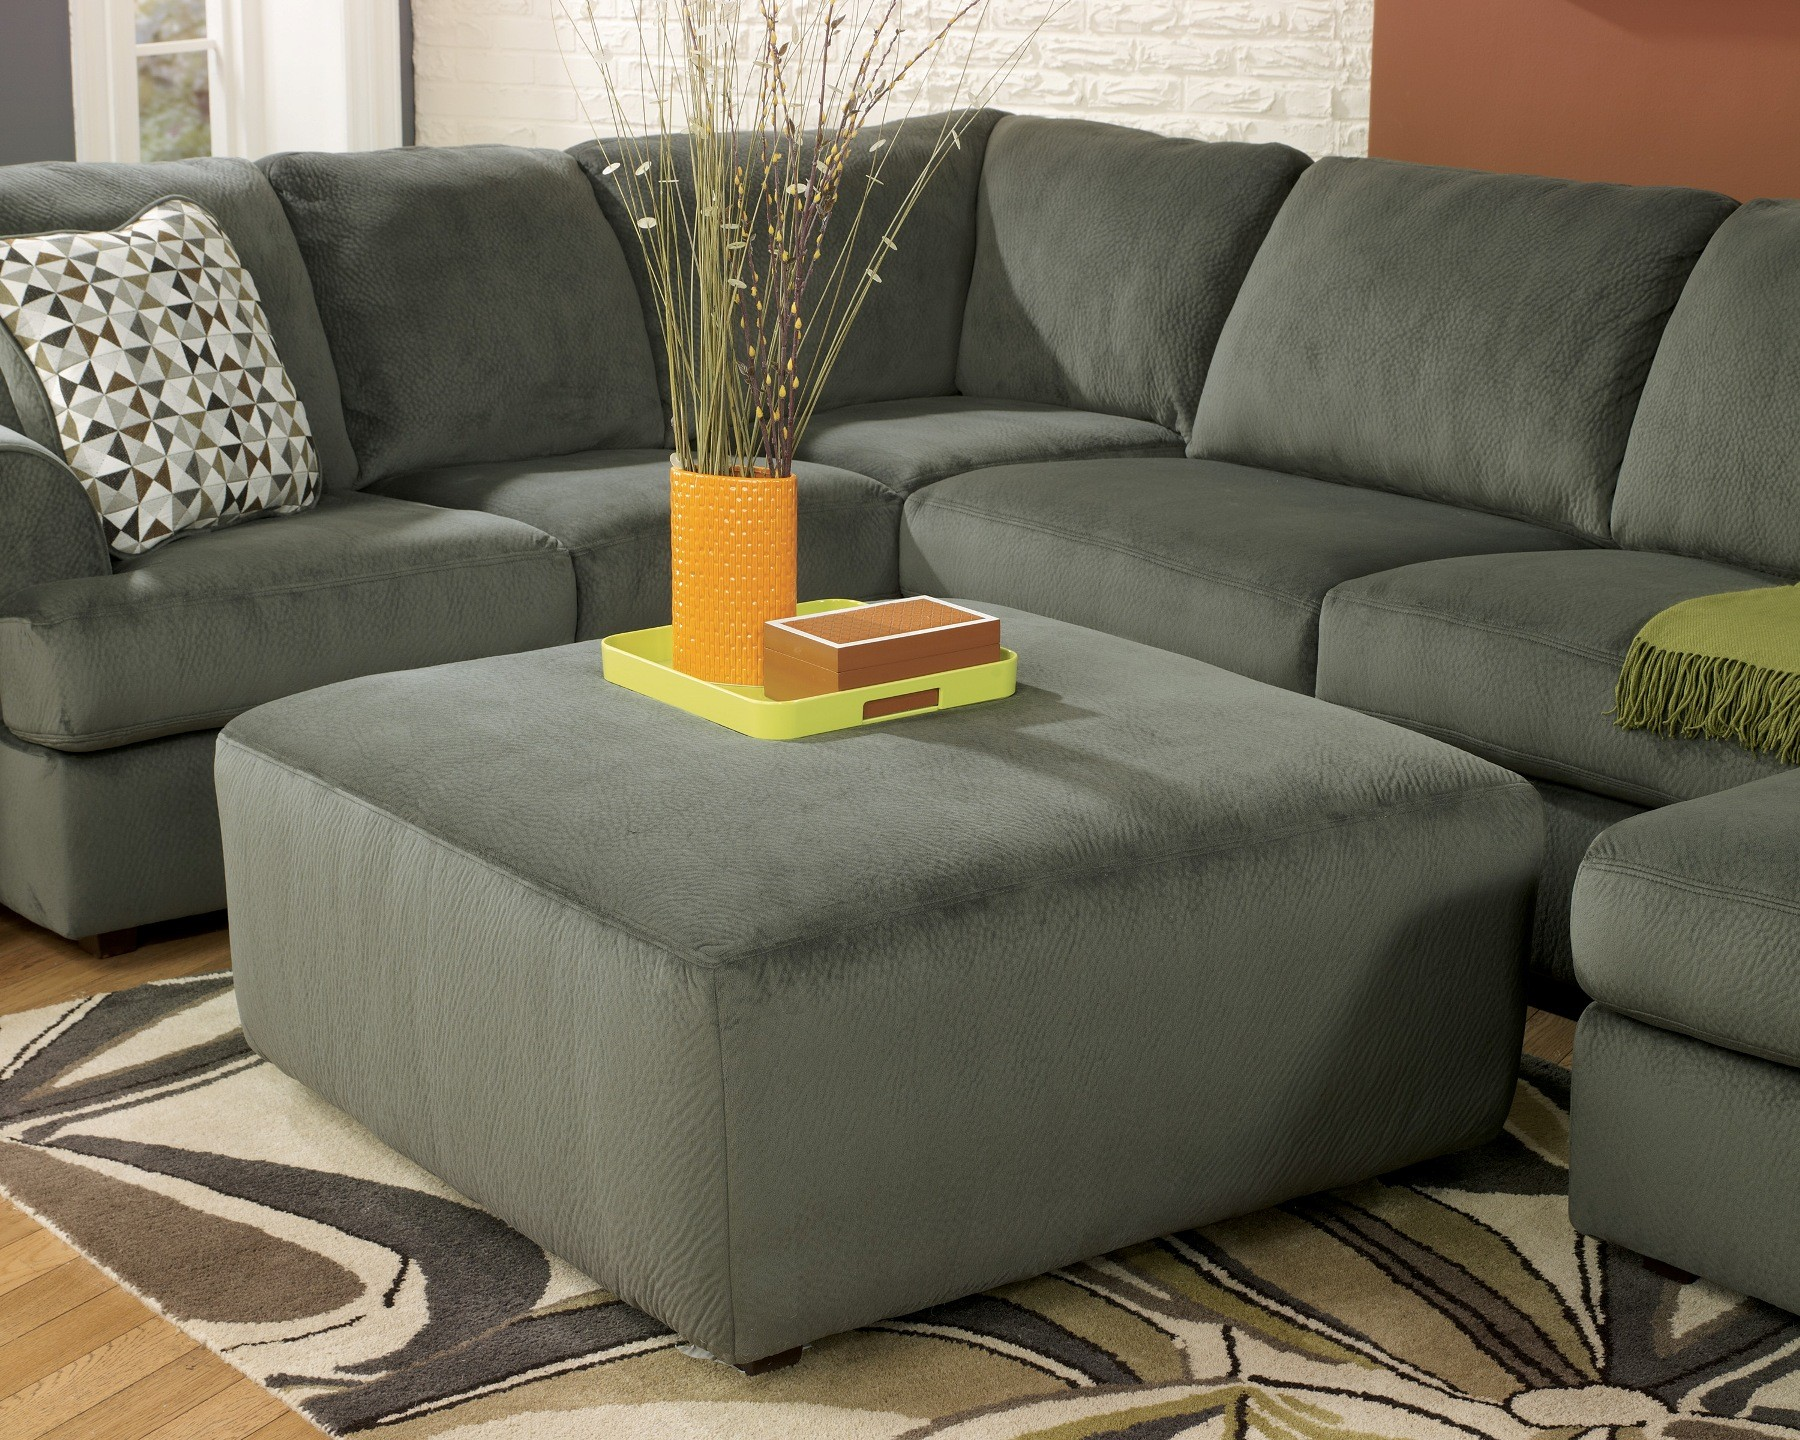 Jessa Place Pewter Oversized Accent Ottoman From Ashley